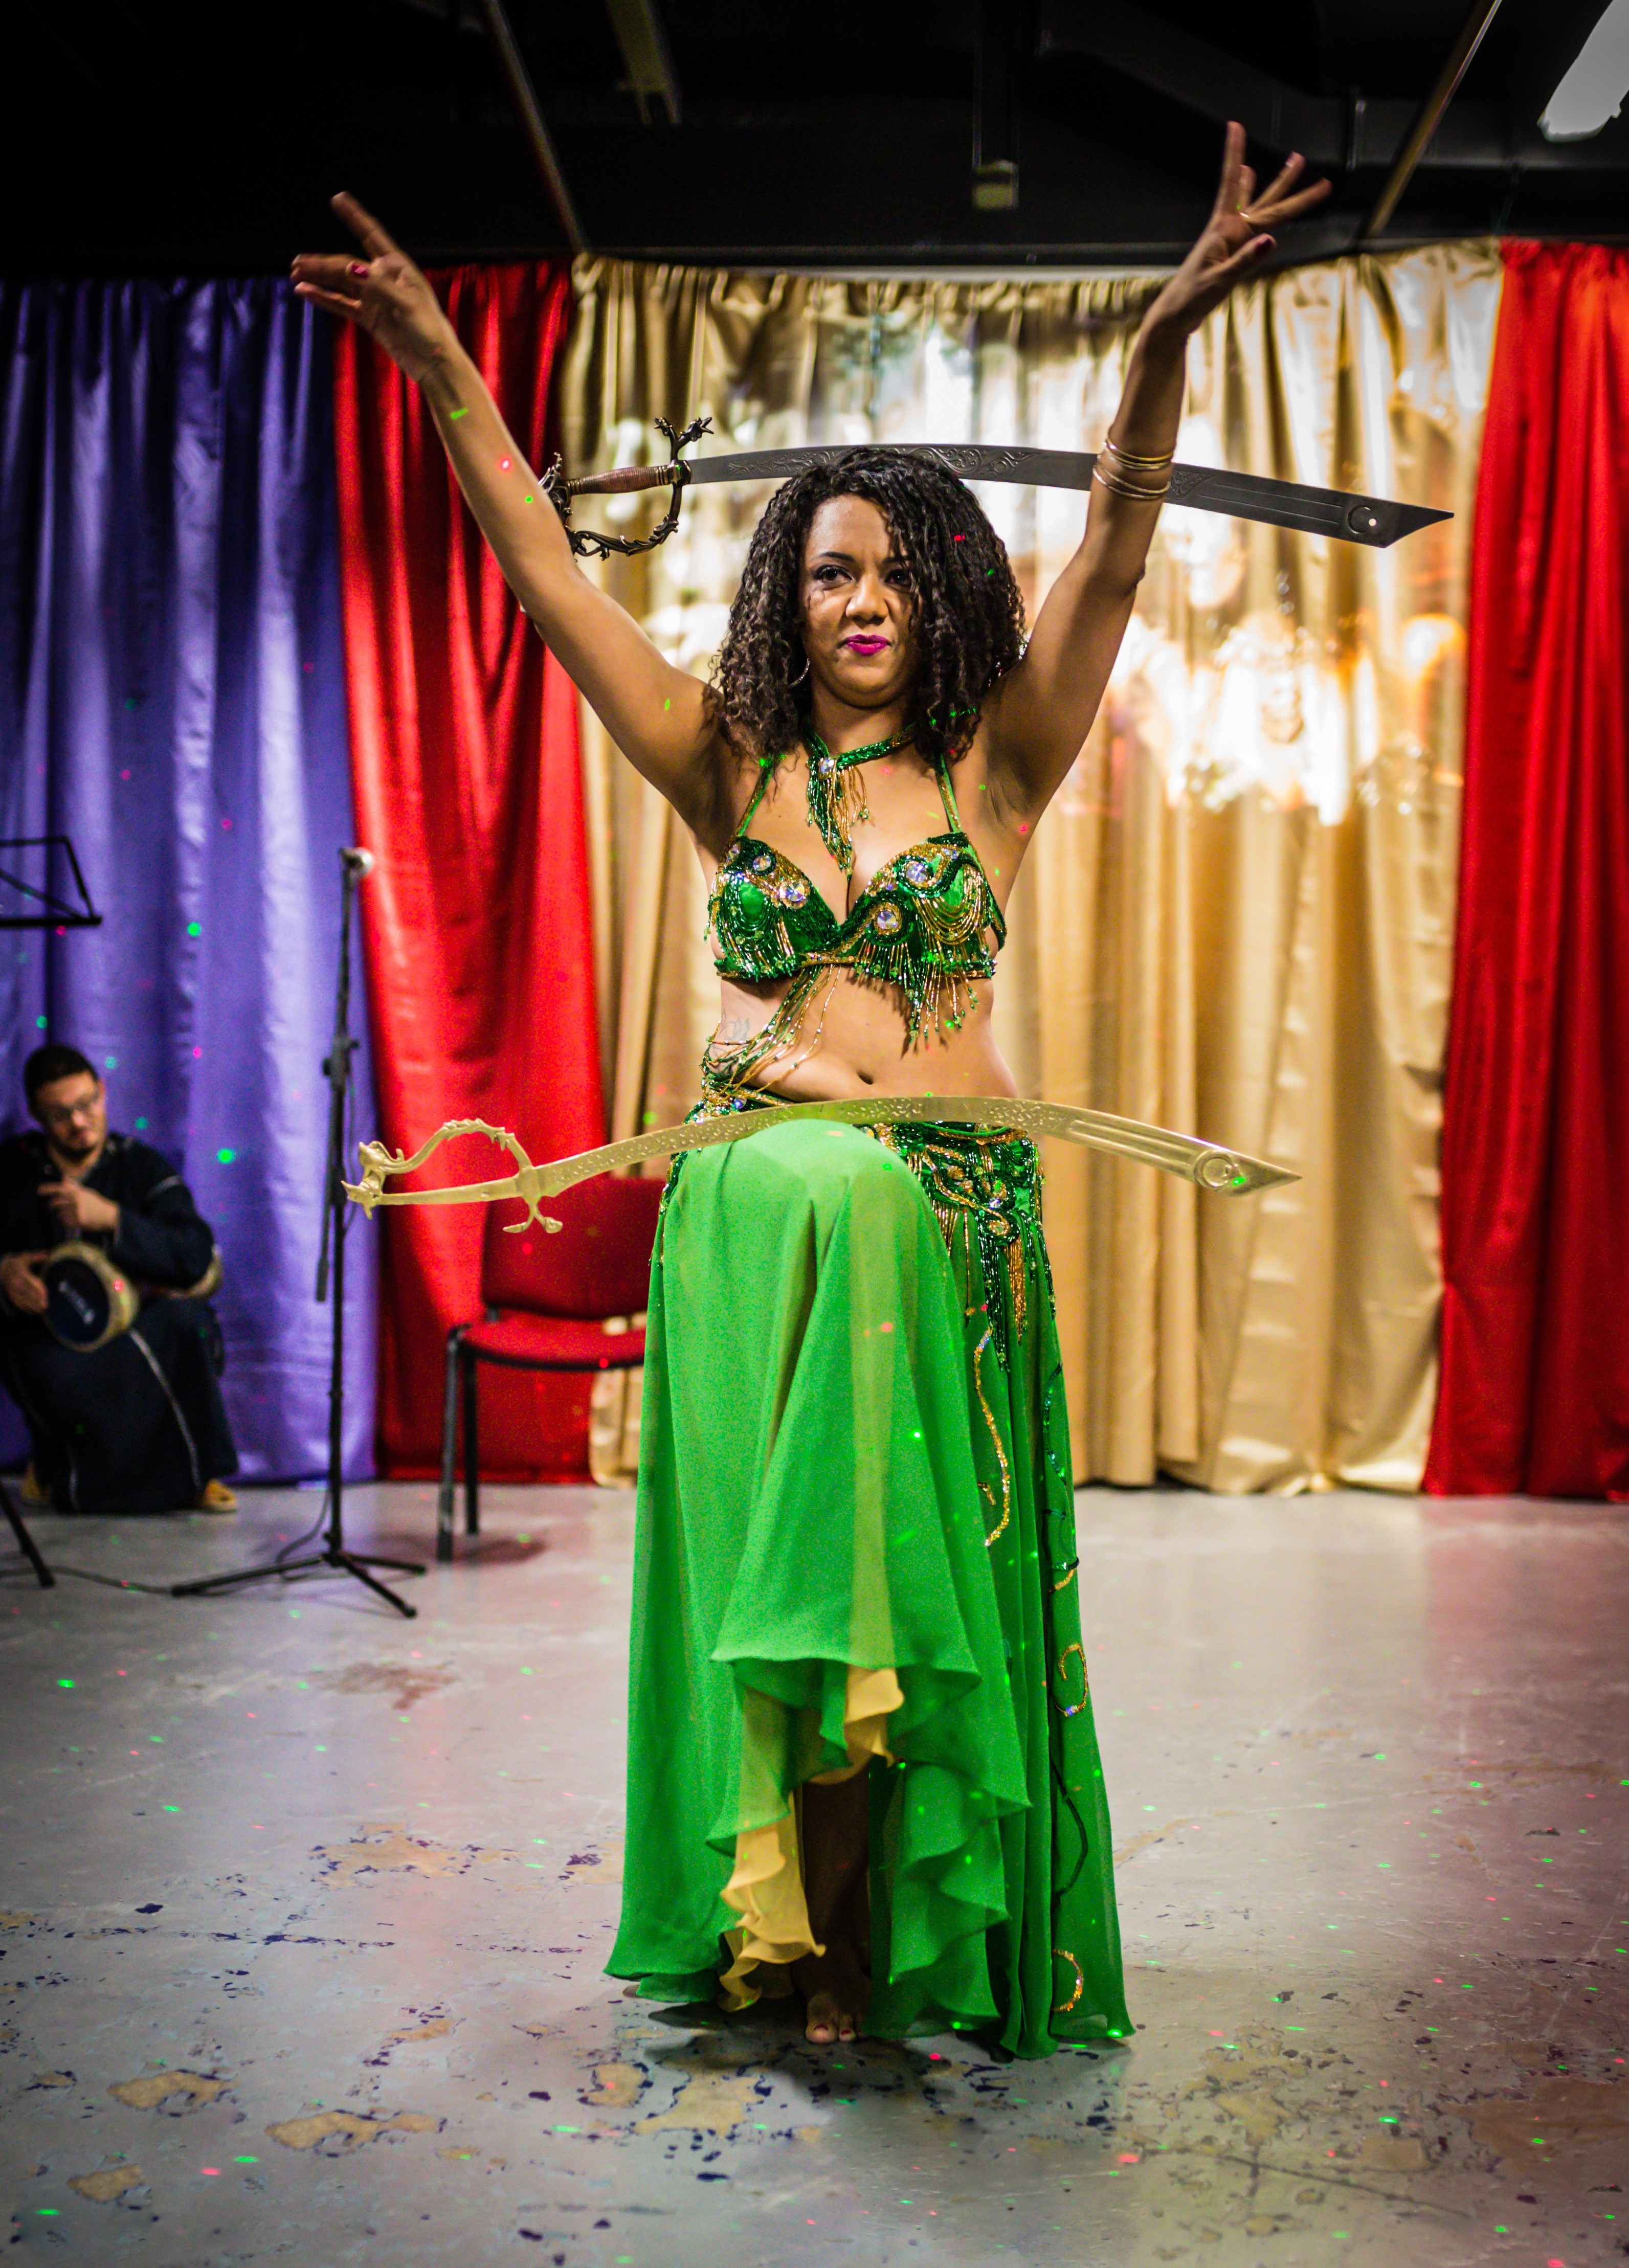 Belly Dance with Swords